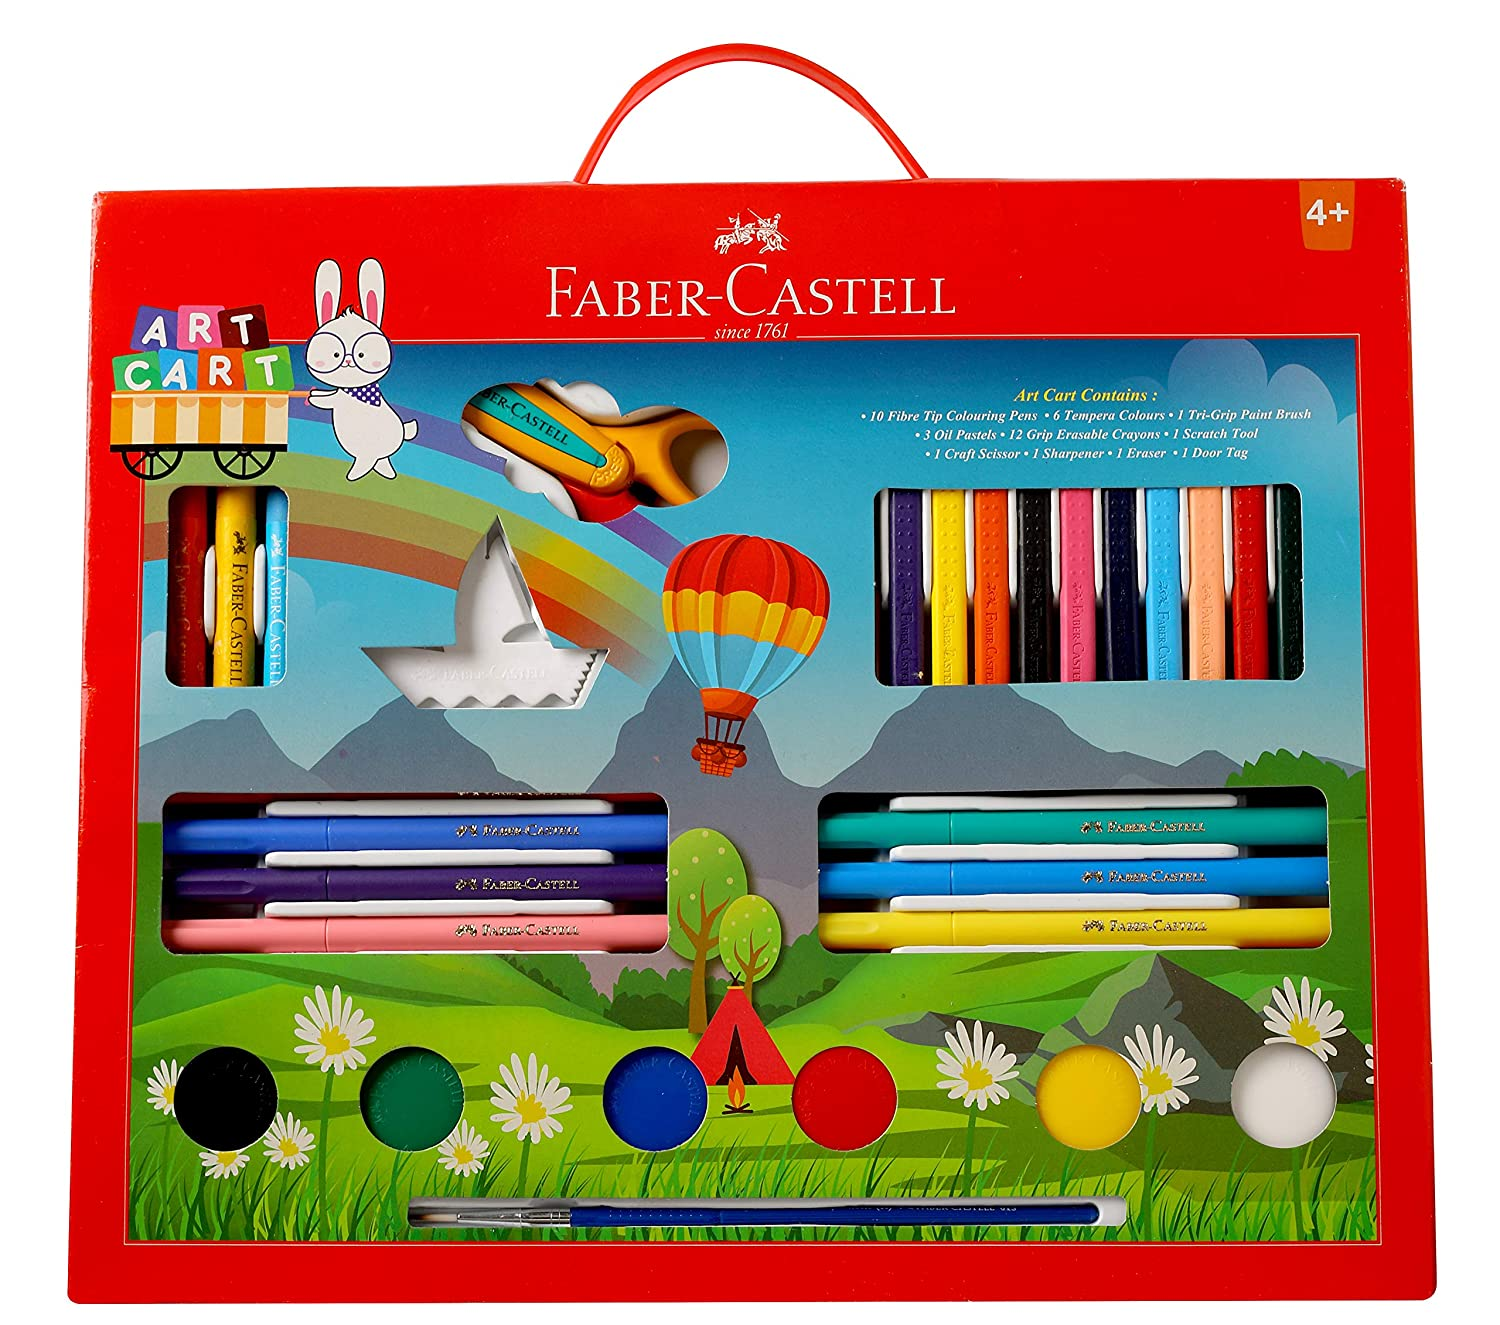 Faber-Castell Art Care Kit (Multicolor)